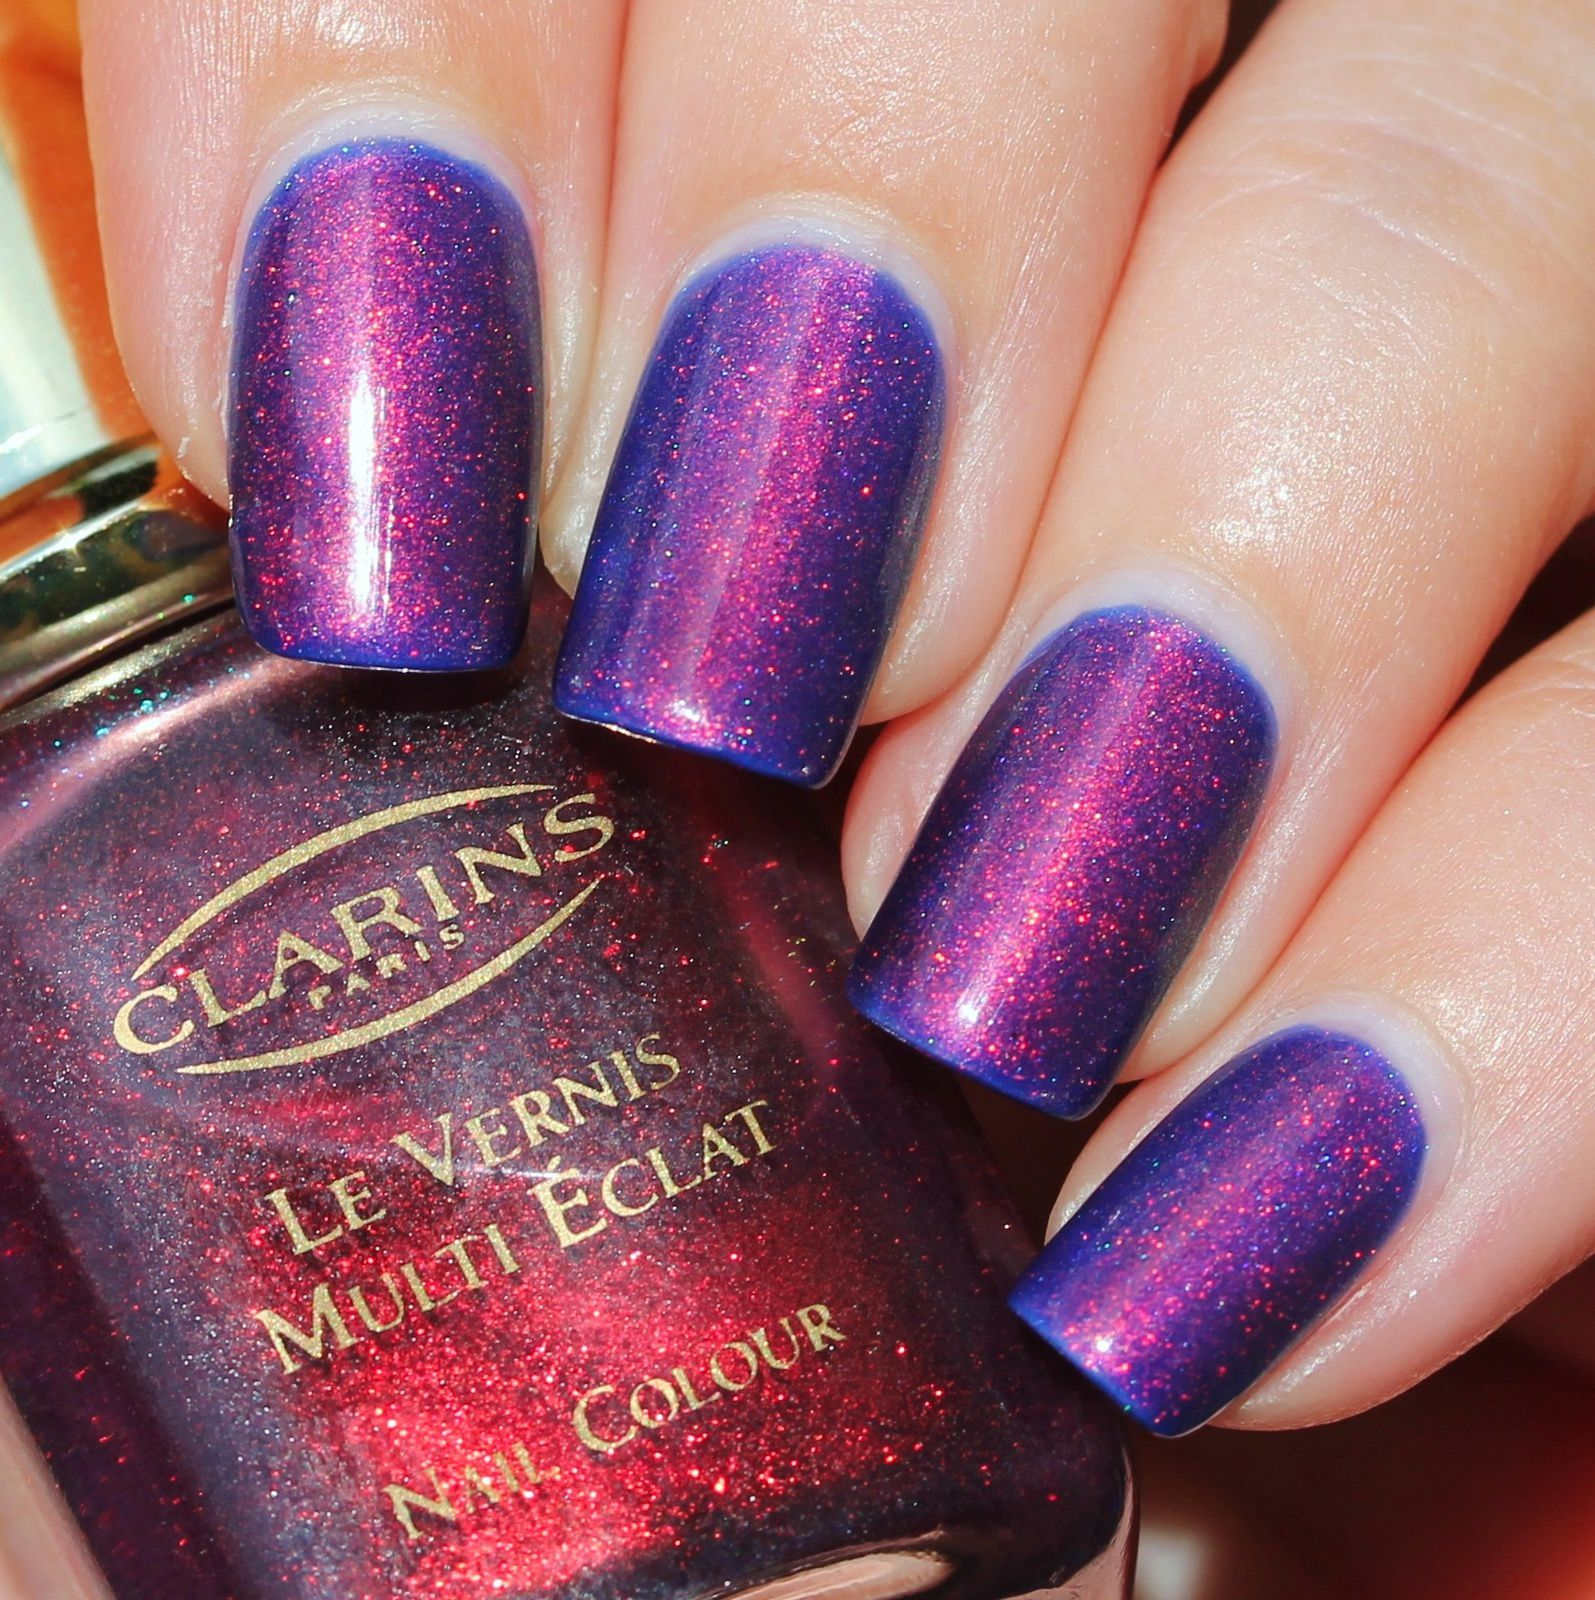 Clarins 230 &quot&#x3B;Unicorn Pee&quot&#x3B; (Over Illyrian Polish Ultraviolence)